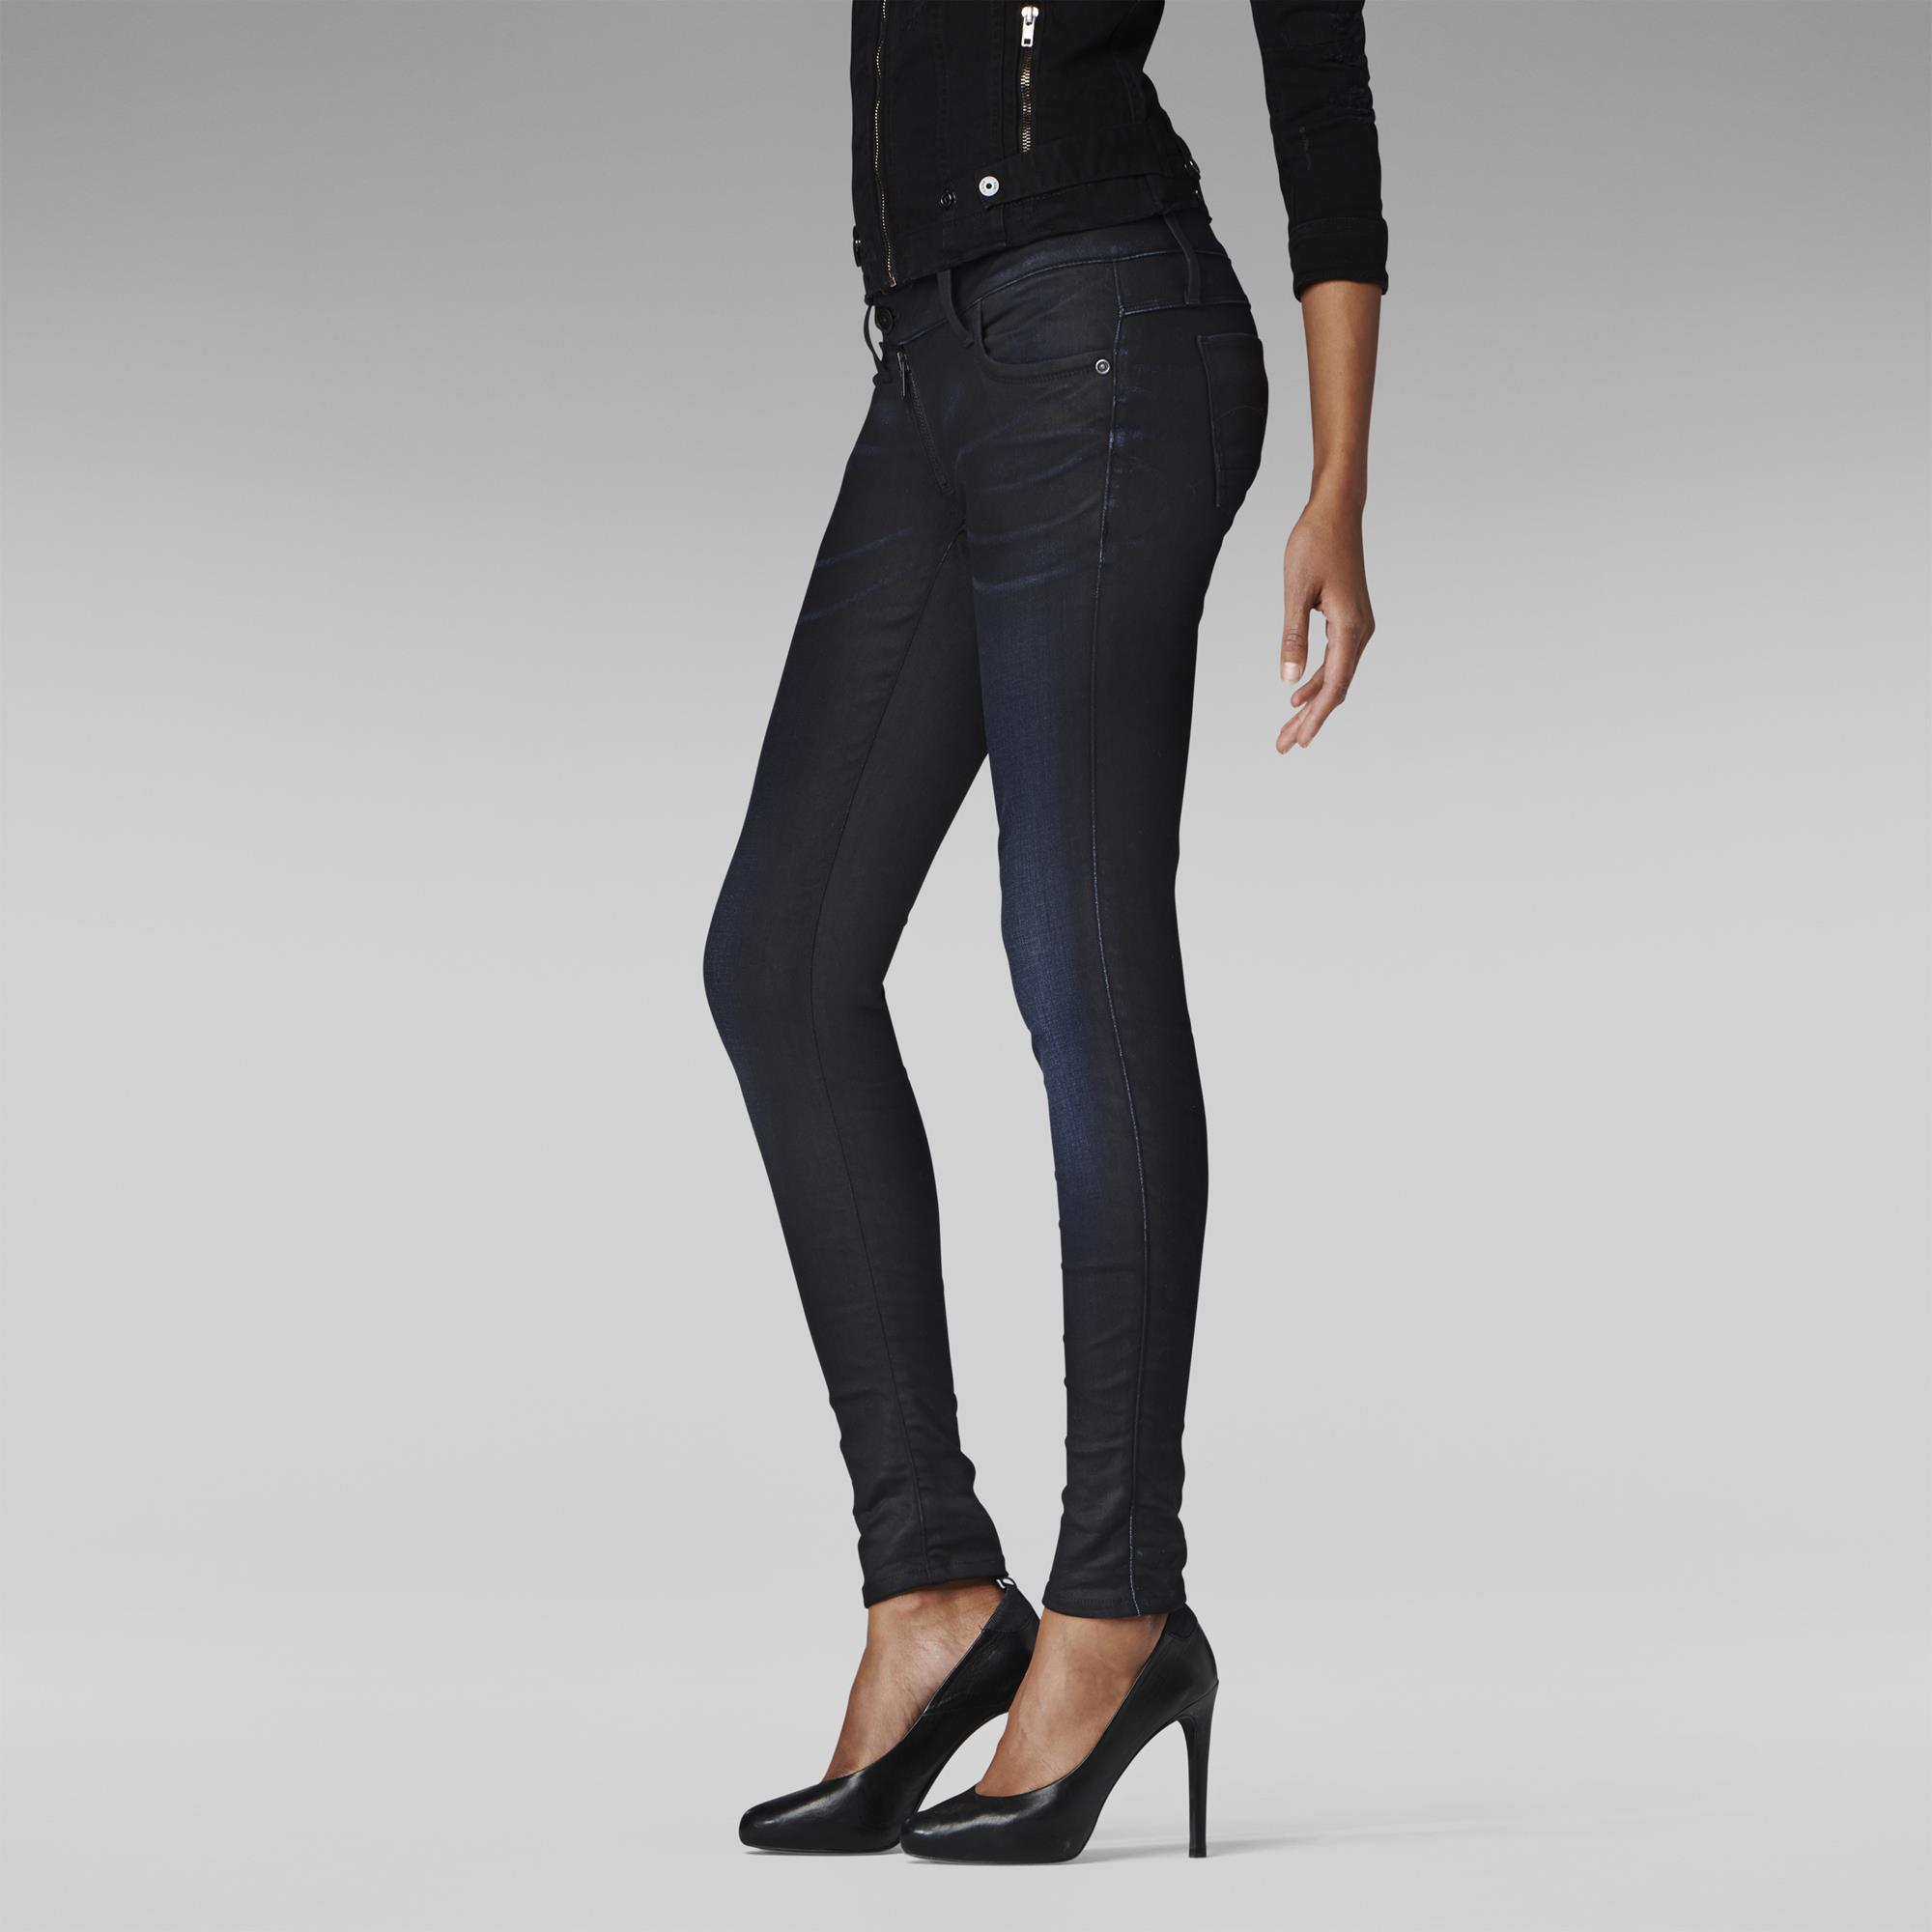 Piet Zoomers. G Star dames jeans